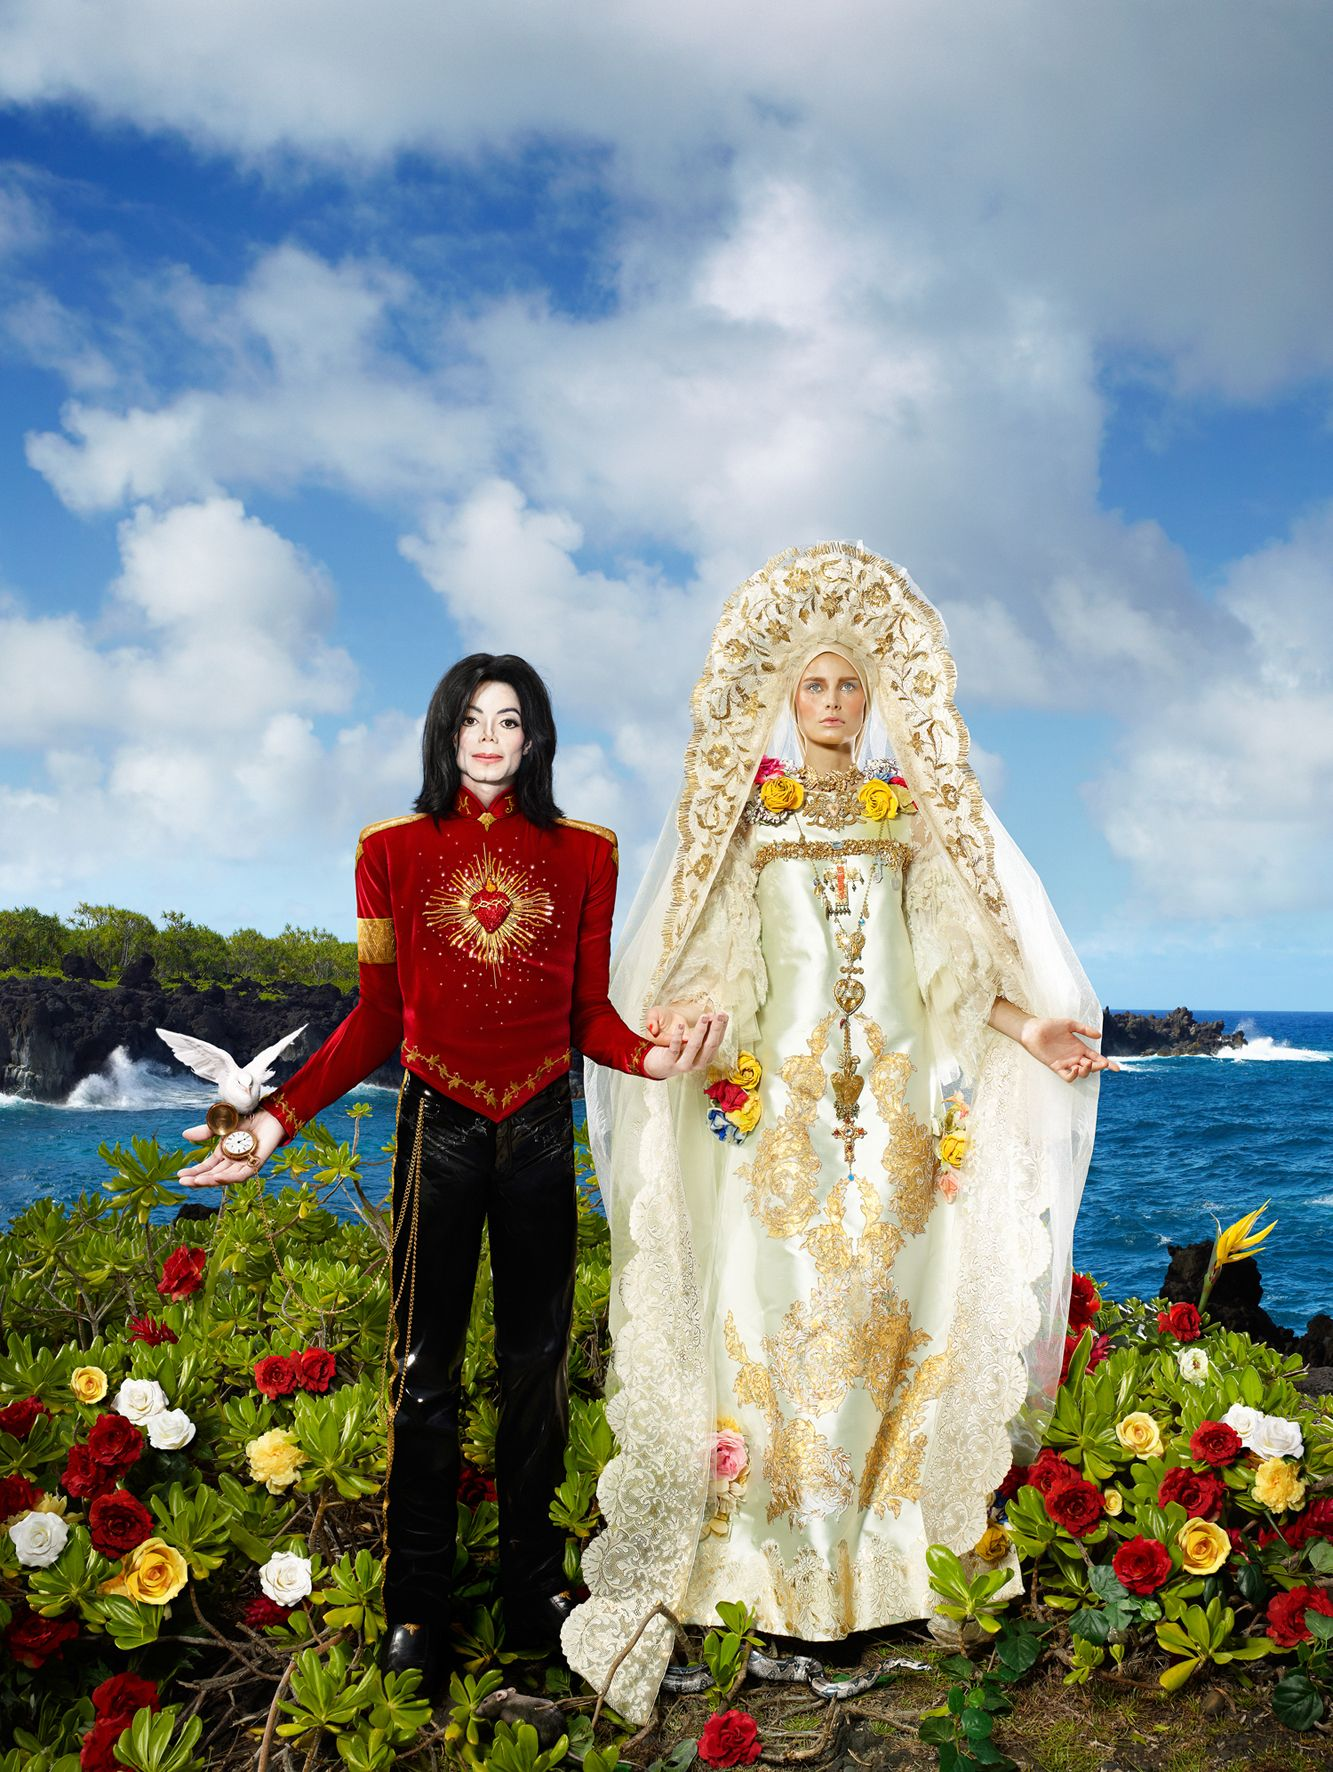 """David Lachapelle """"The Beatification: I'll never let you part for you're always in my heart"""""""